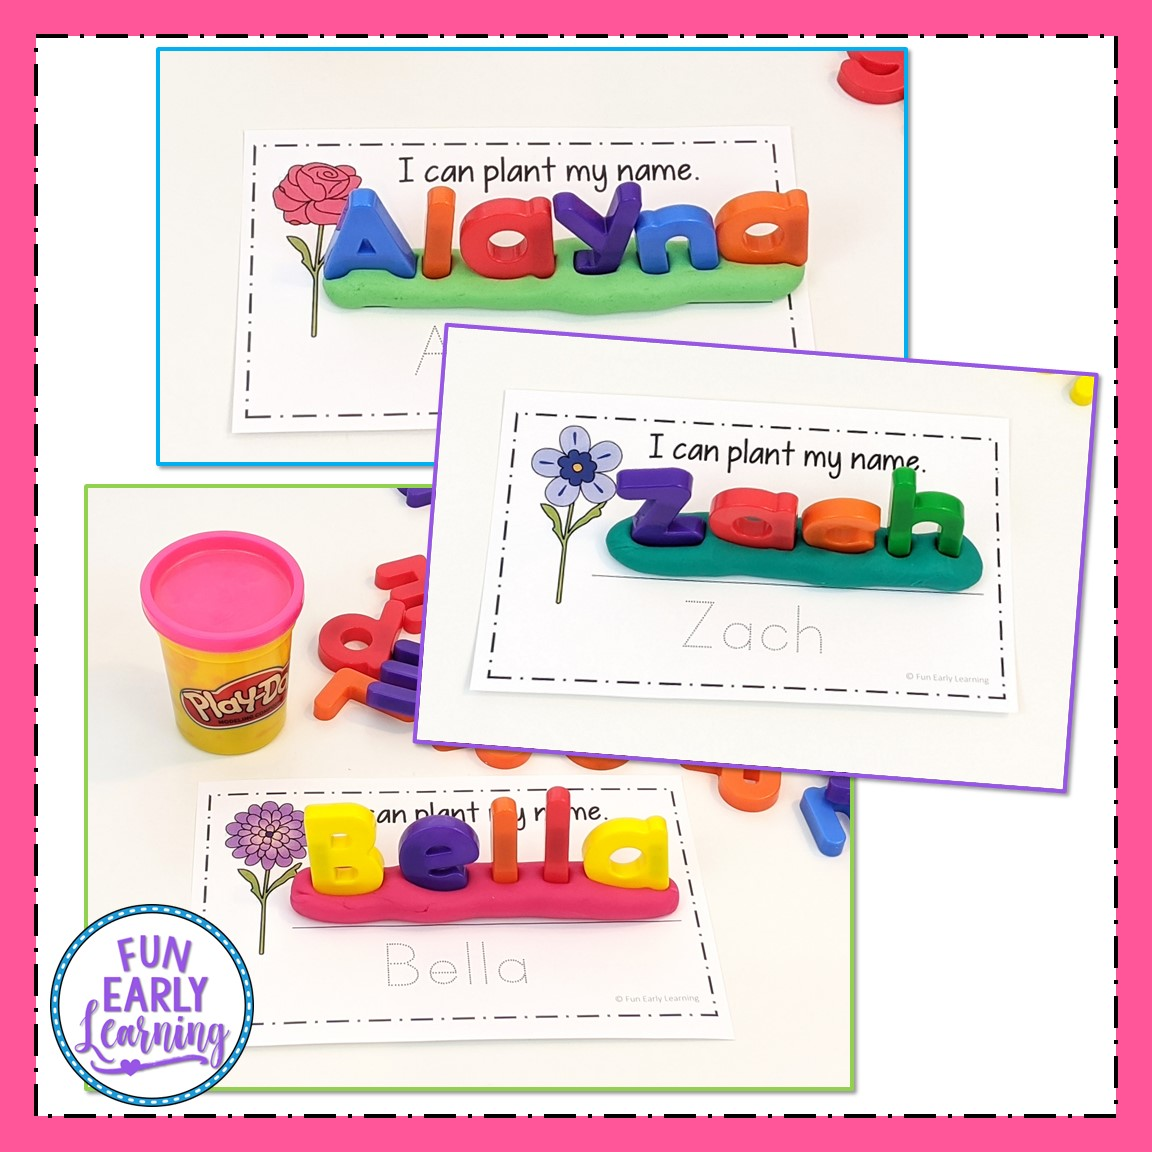 Editable Planting Names And Words Activities For Preschool